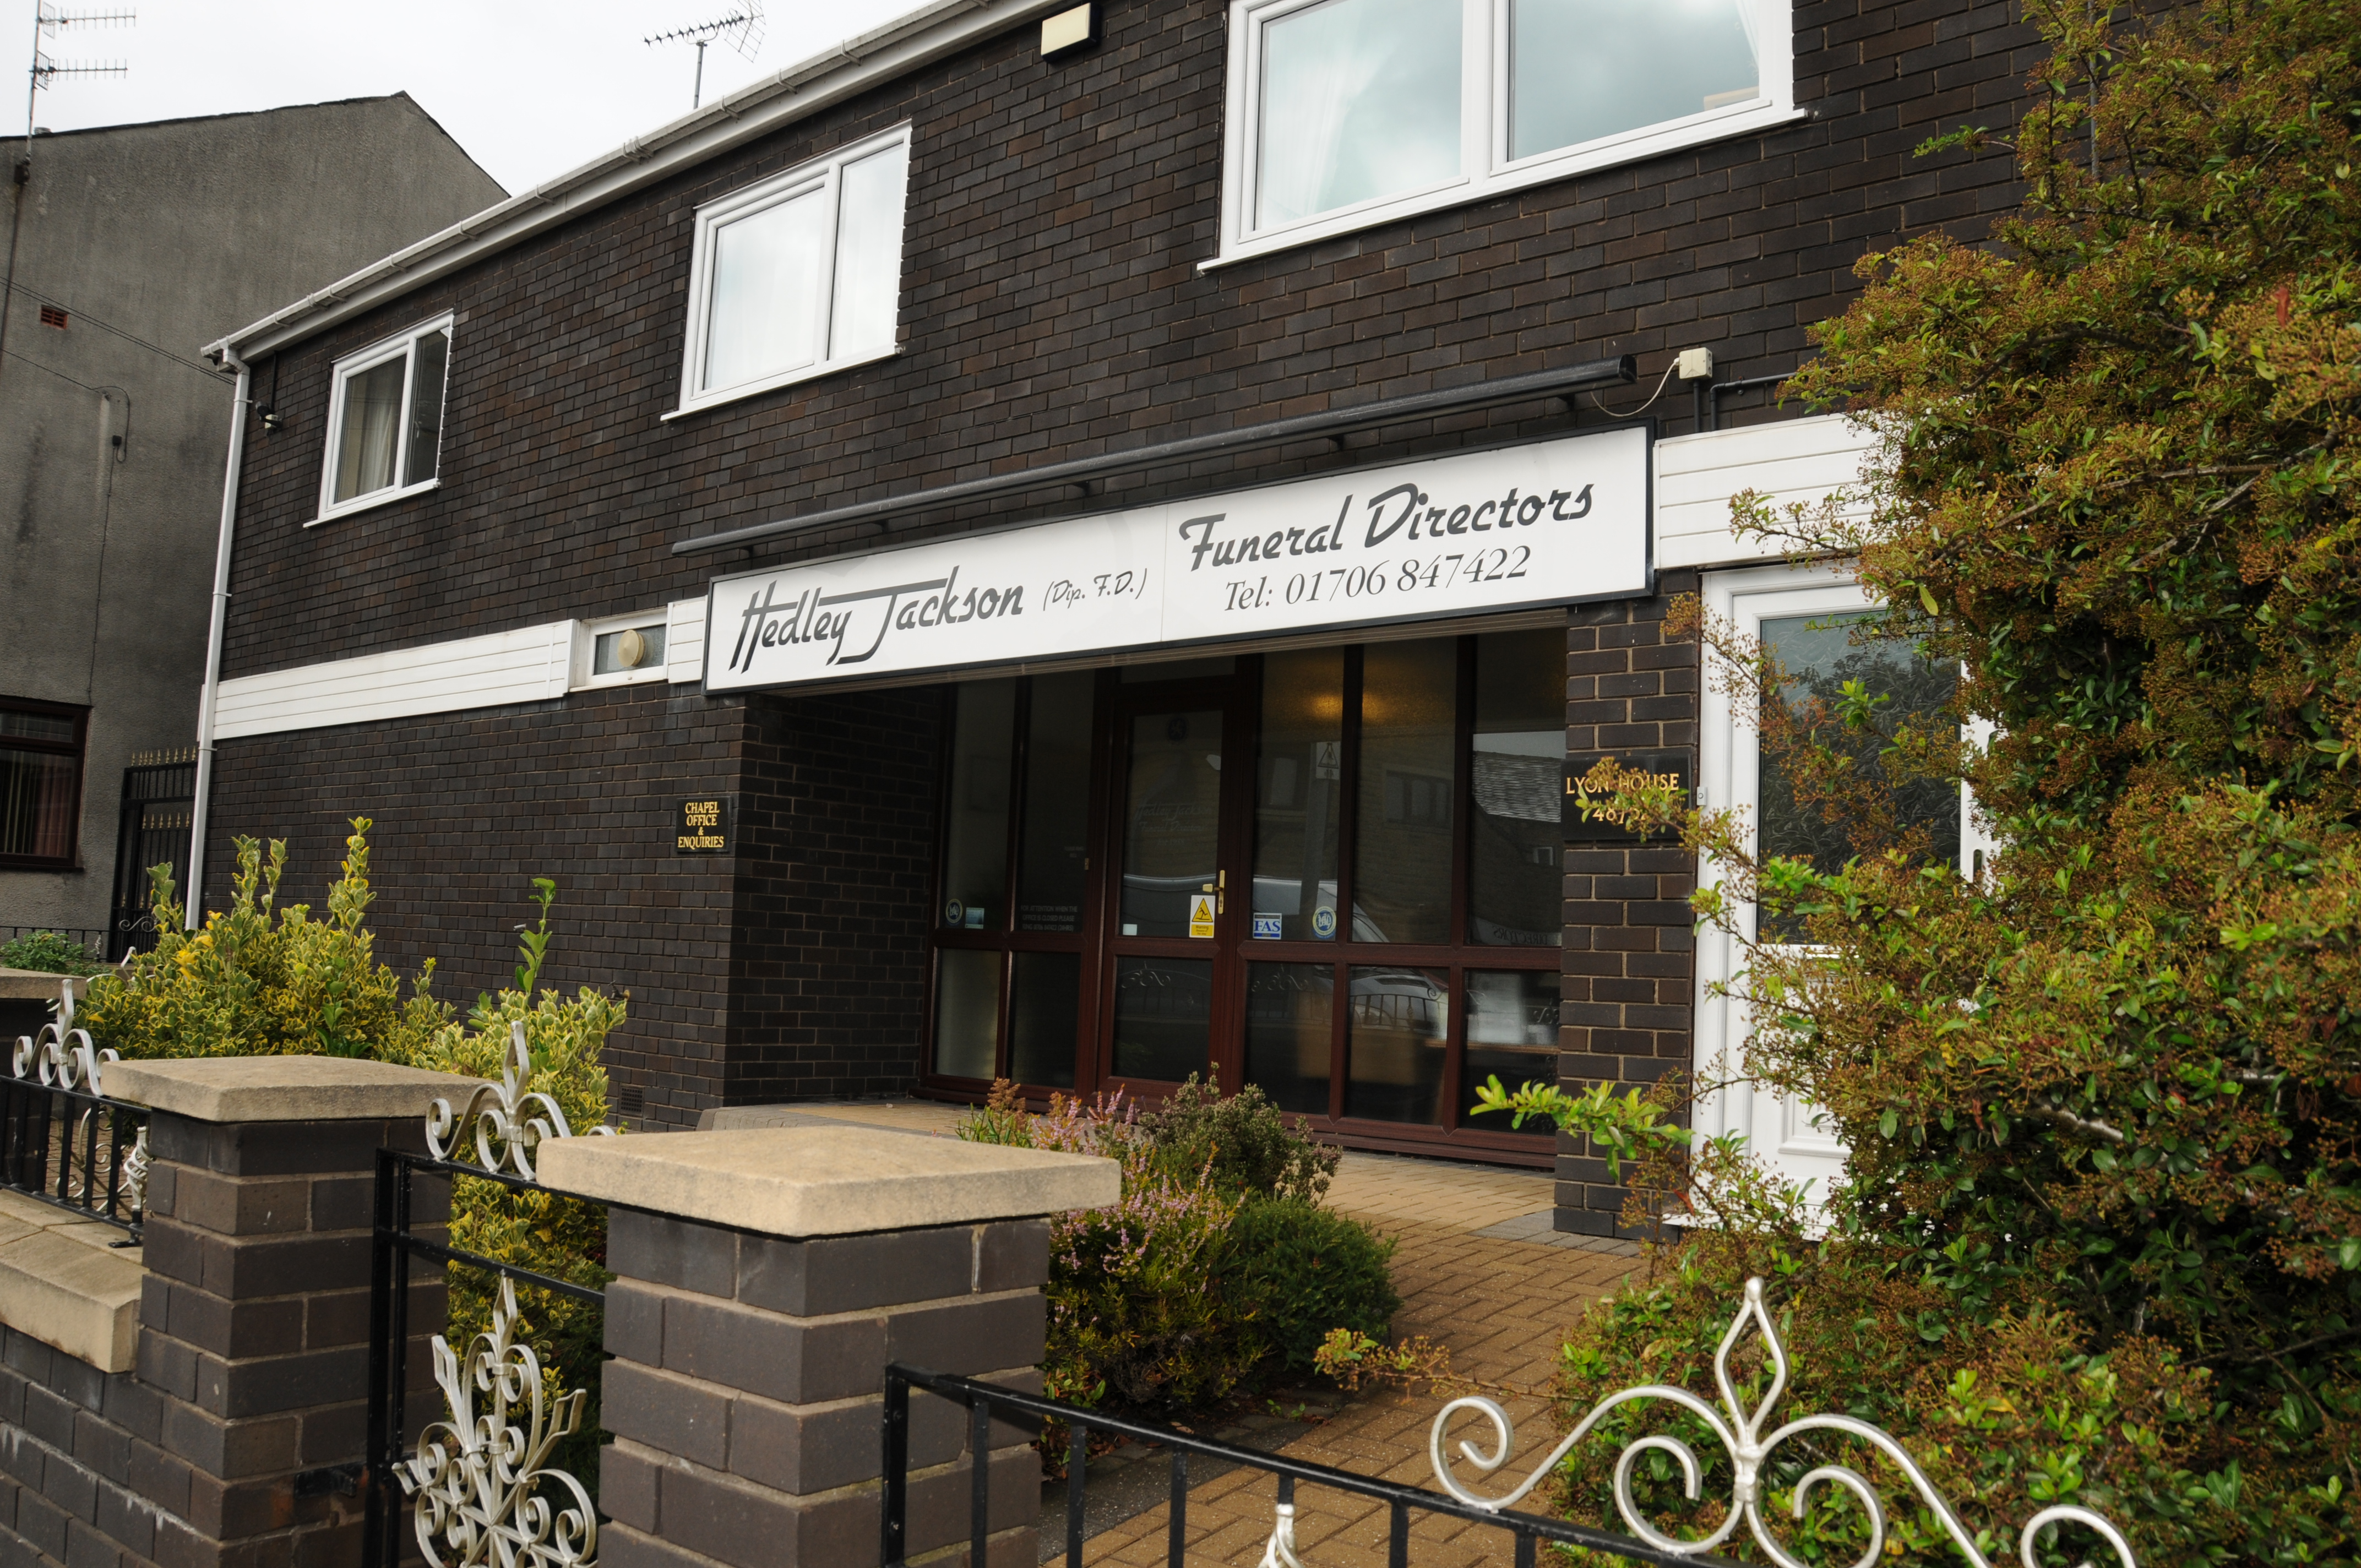 Hedley Jackson Funeral Director